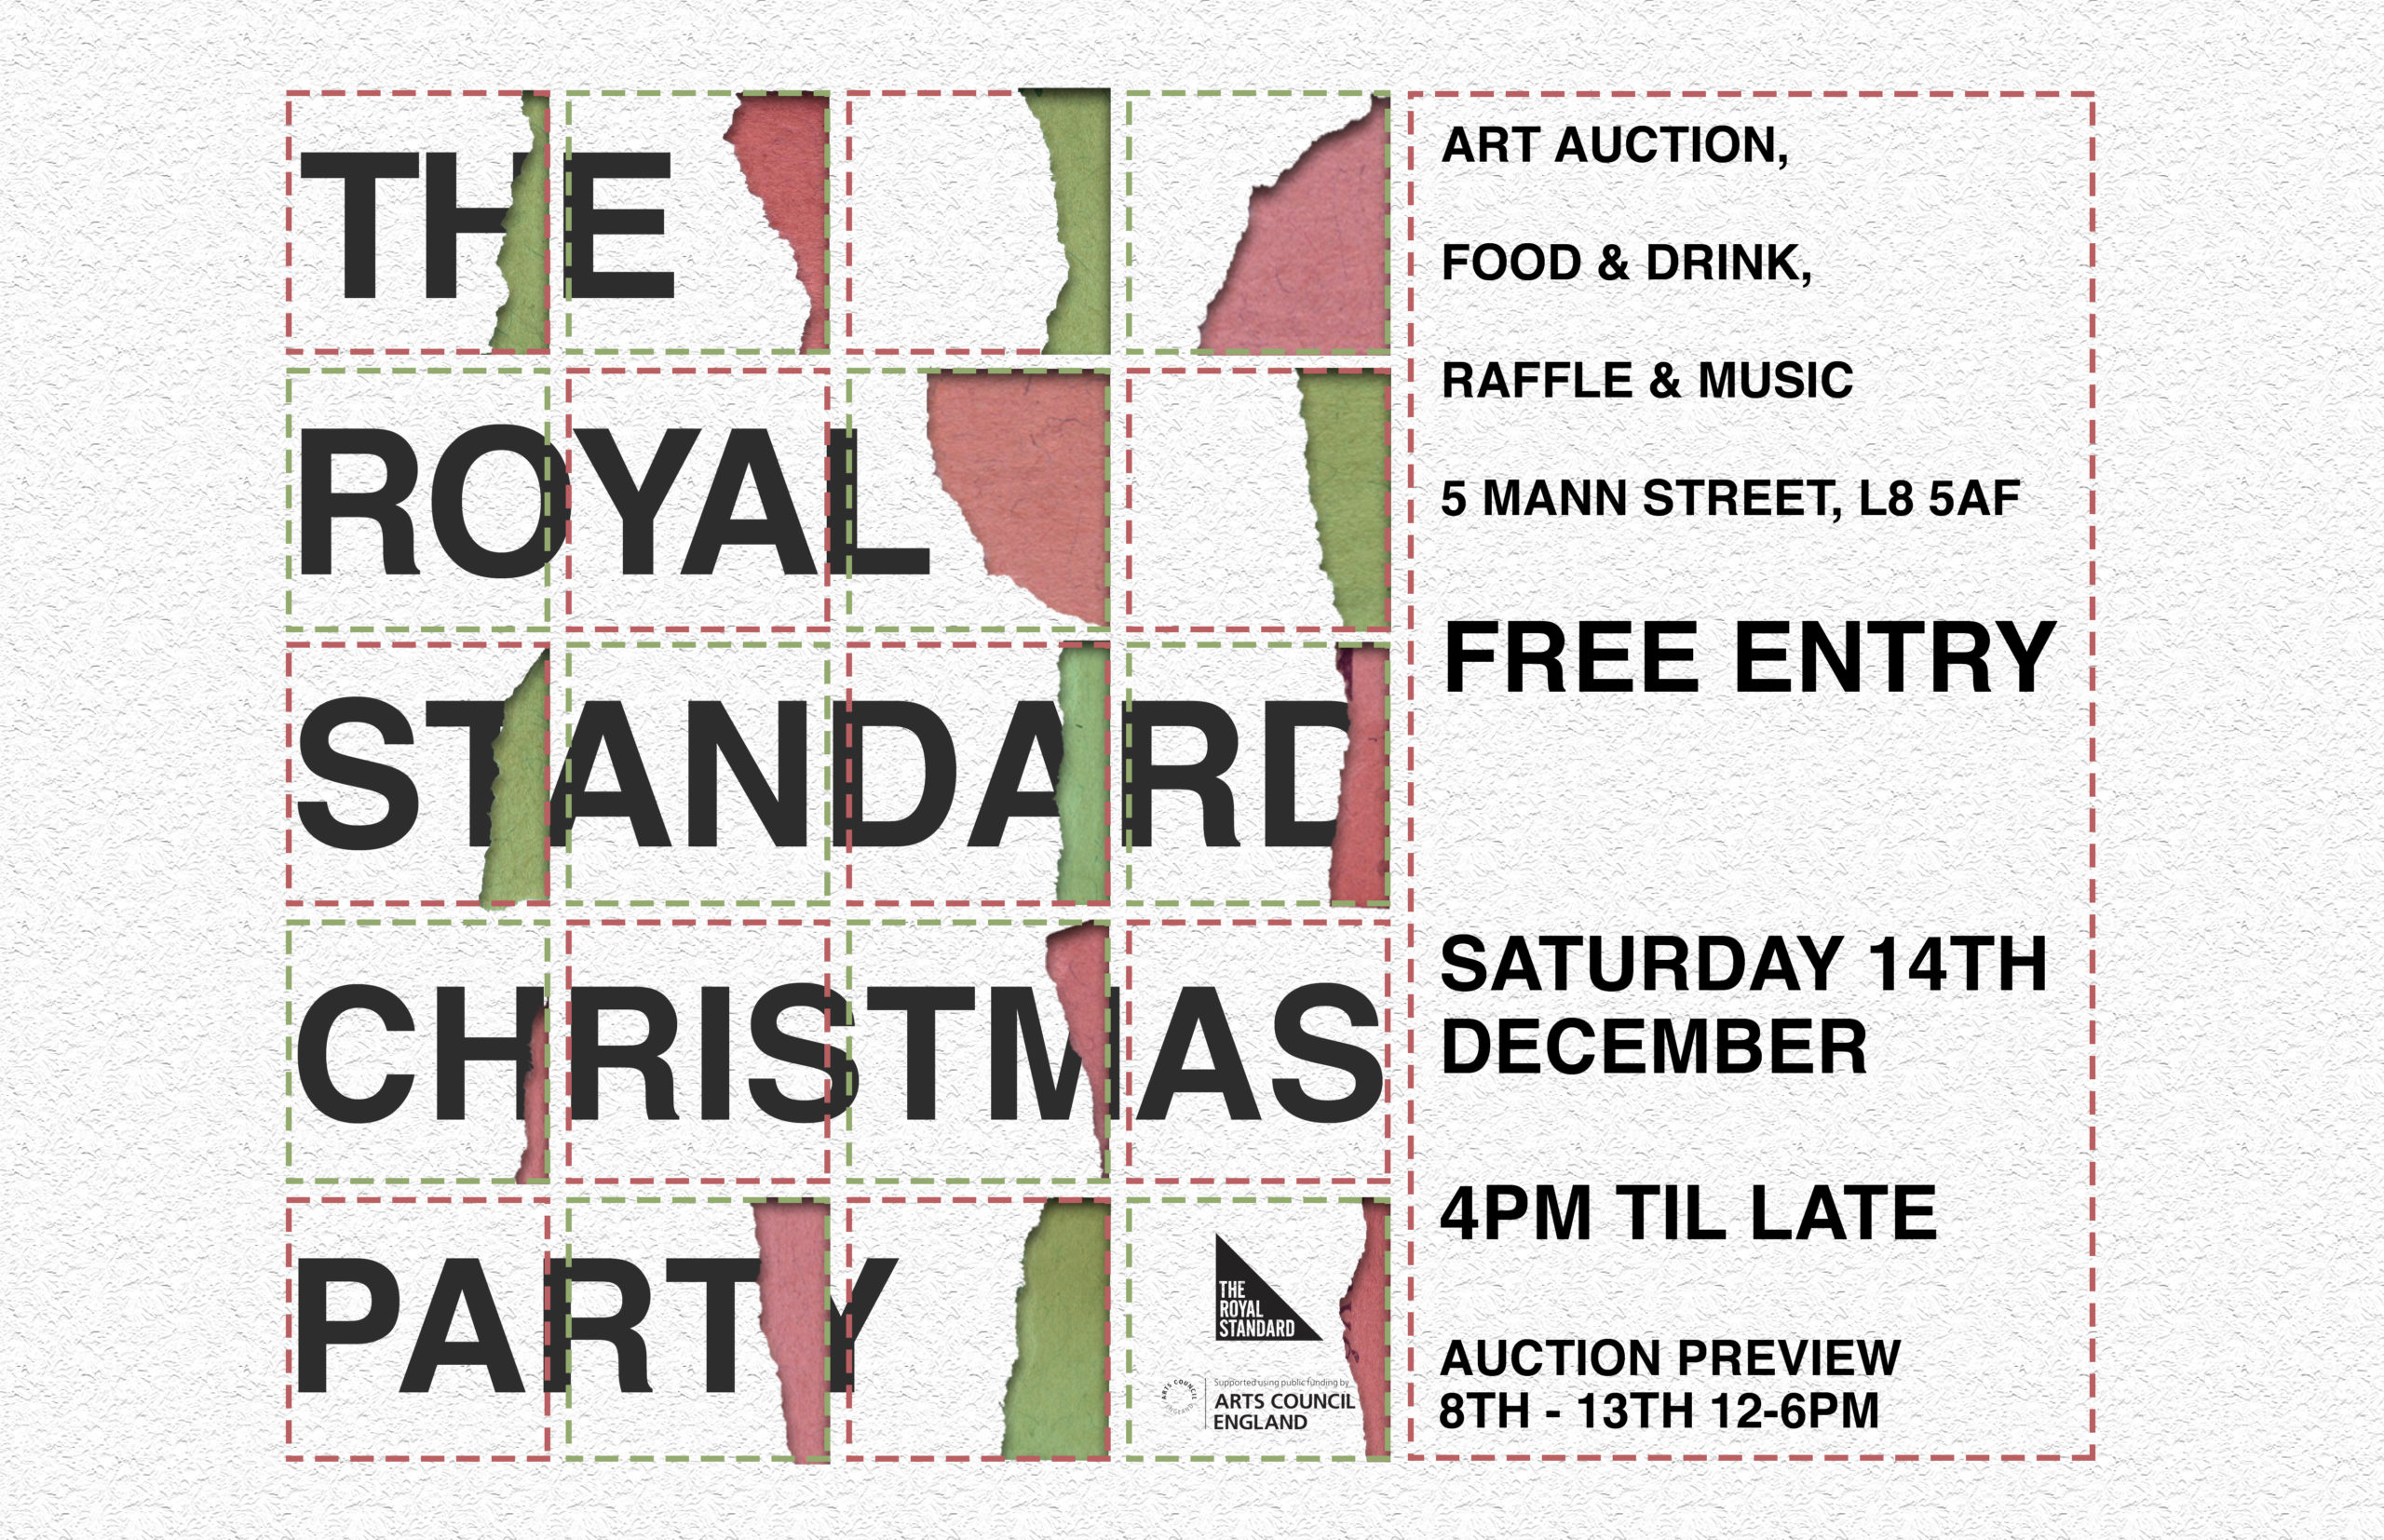 The Royal Standard: Christmas Party & Auction